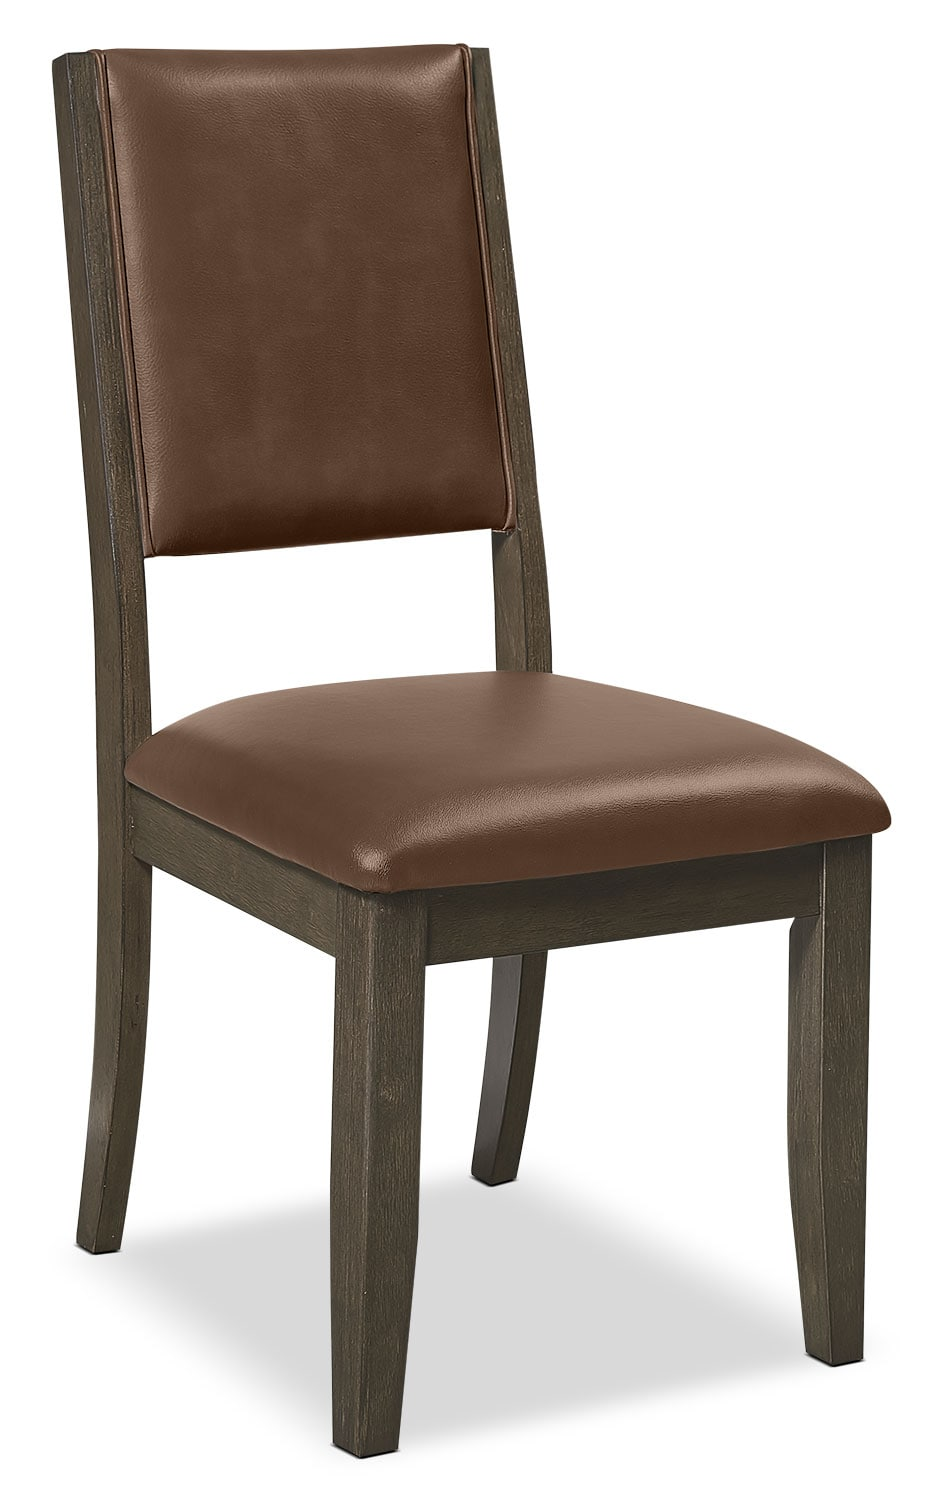 Banff Dining Chair – Brown